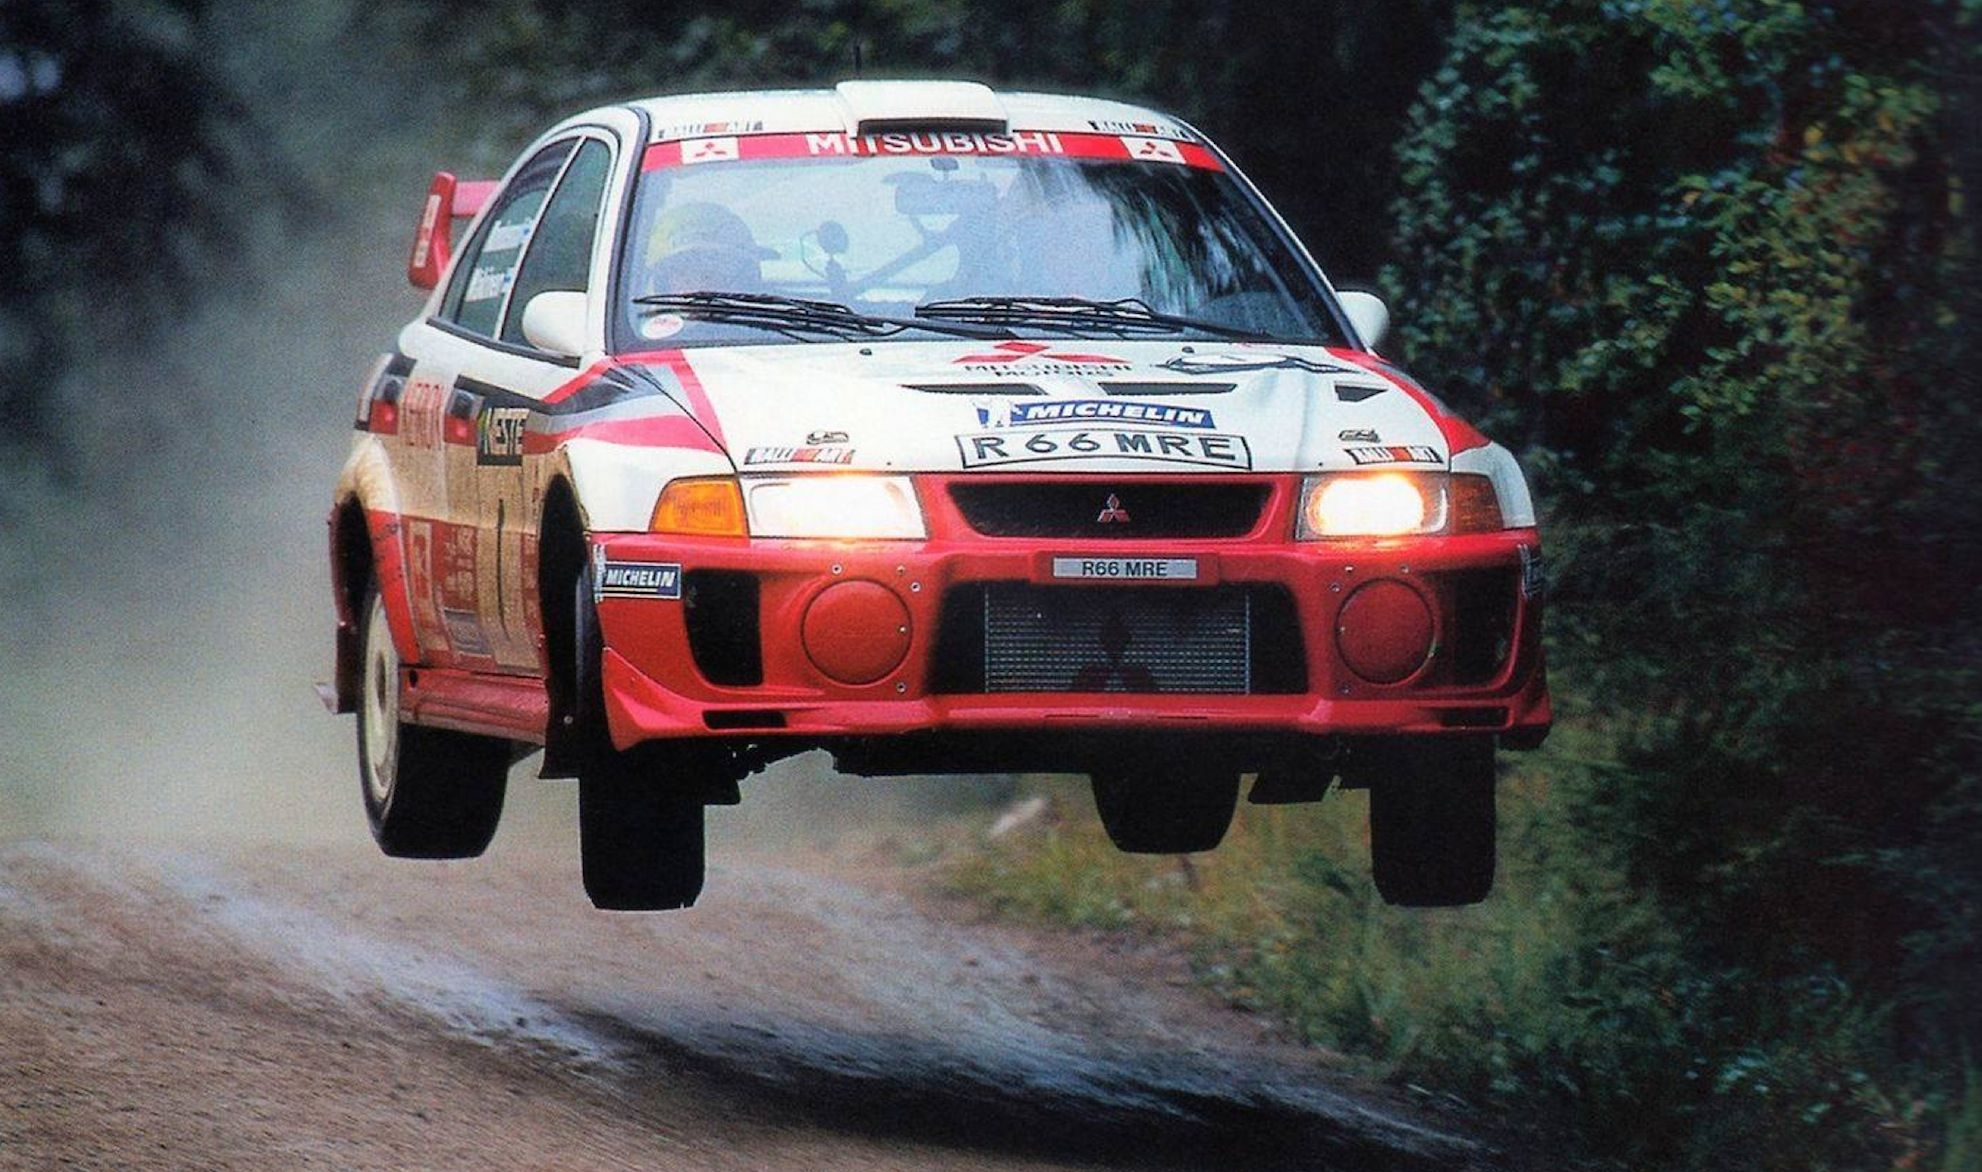 13 best Tommi Makinen on SnapLap images on Pinterest | Nissan, Rally ...